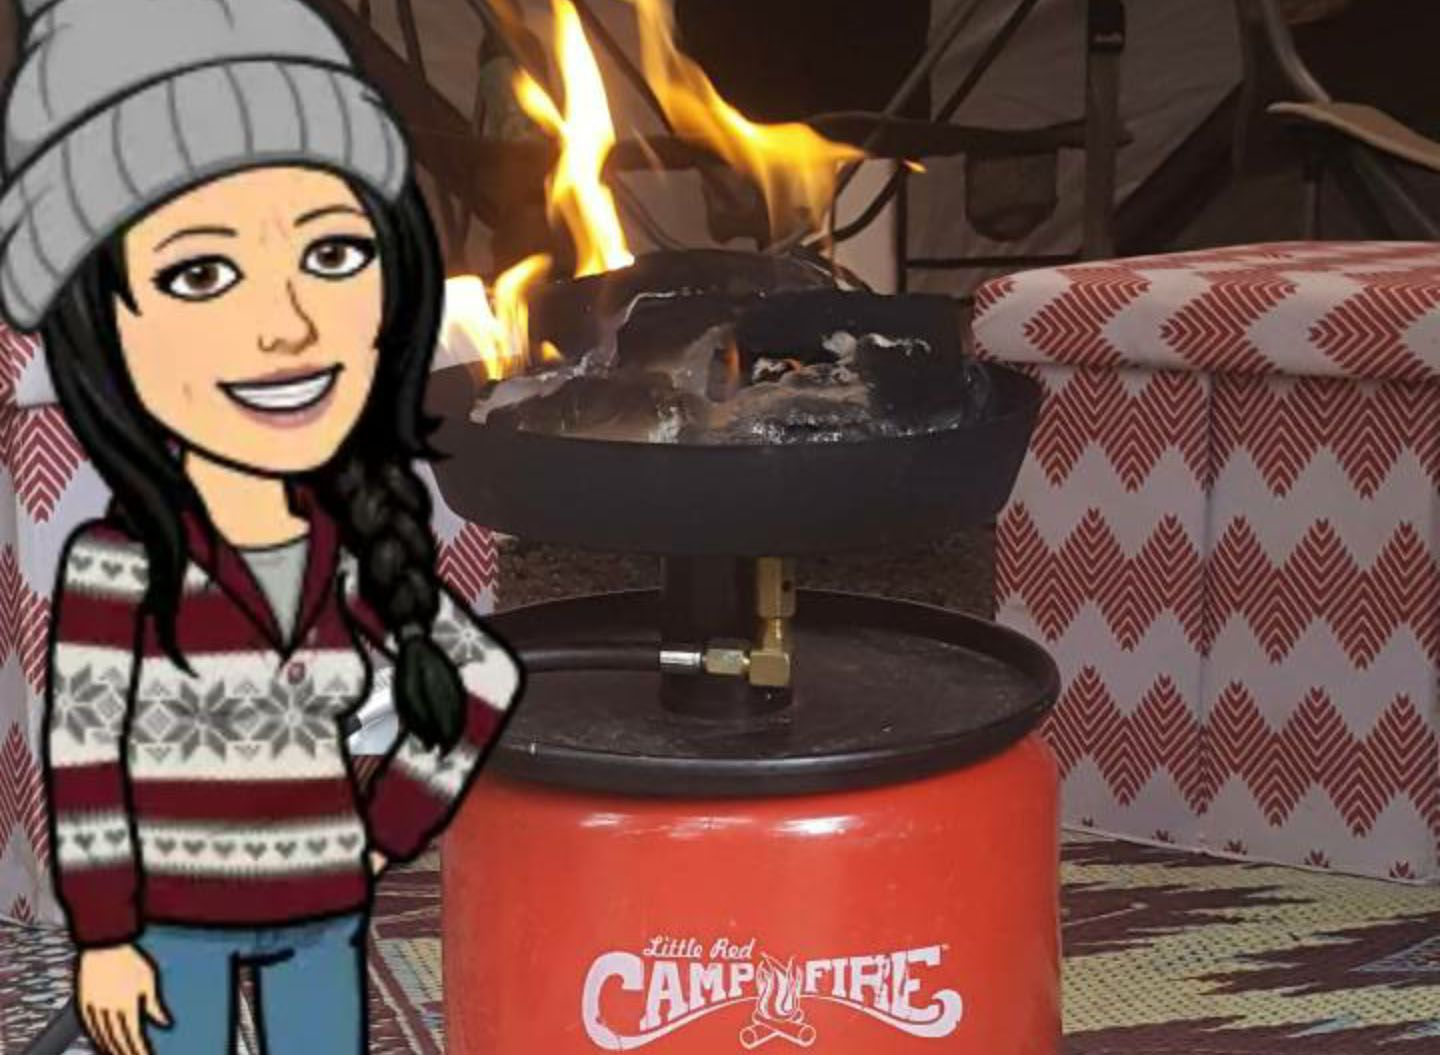 I Give This Product 5 Stars And Here S Why We Are Rv Ers And A Lot Of The Parks And Locations We Have Visited Do Not Allow Wood Fires Little Red Campfire